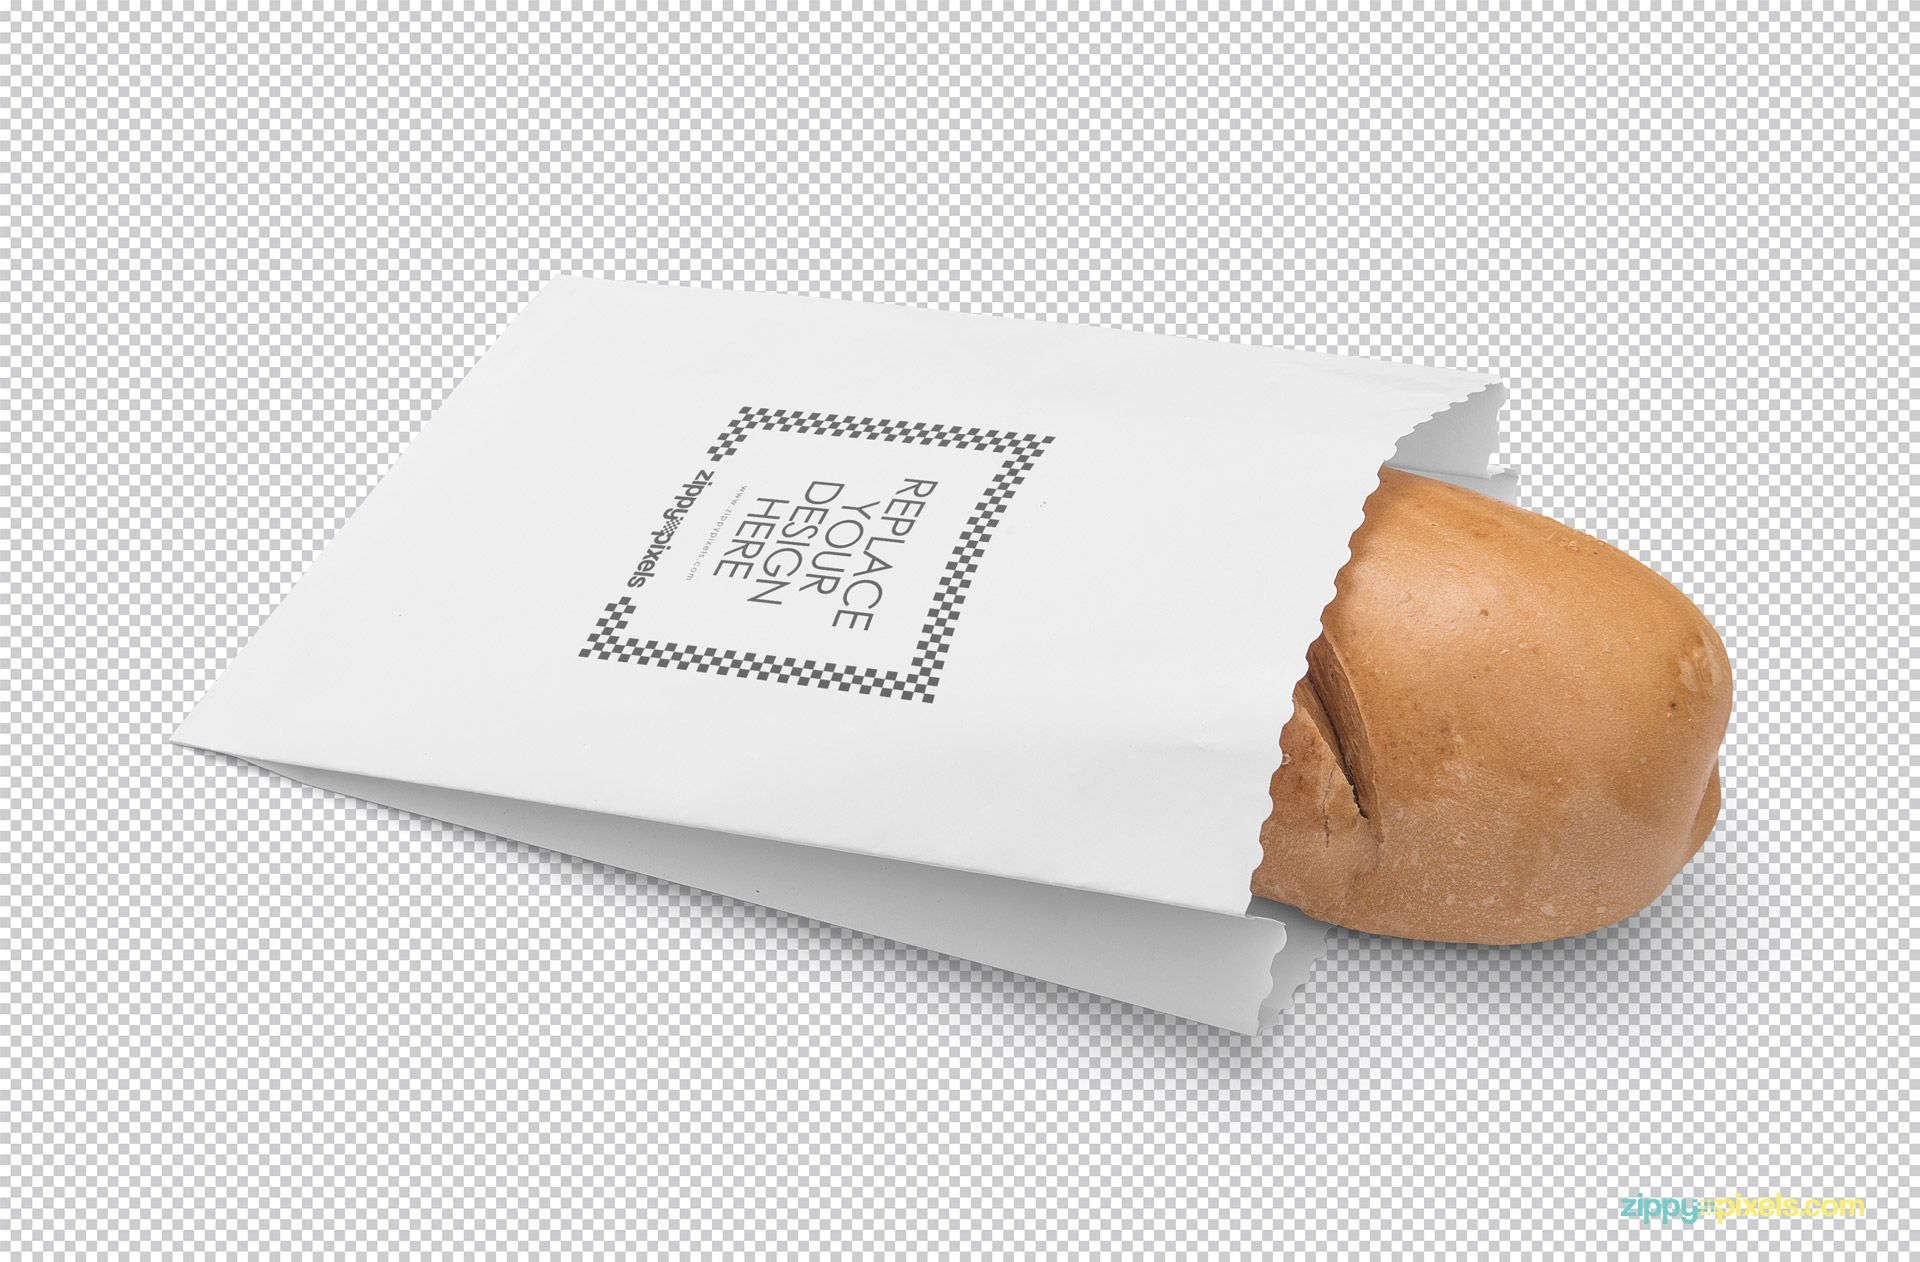 Paper bag mockup with design replacement option.